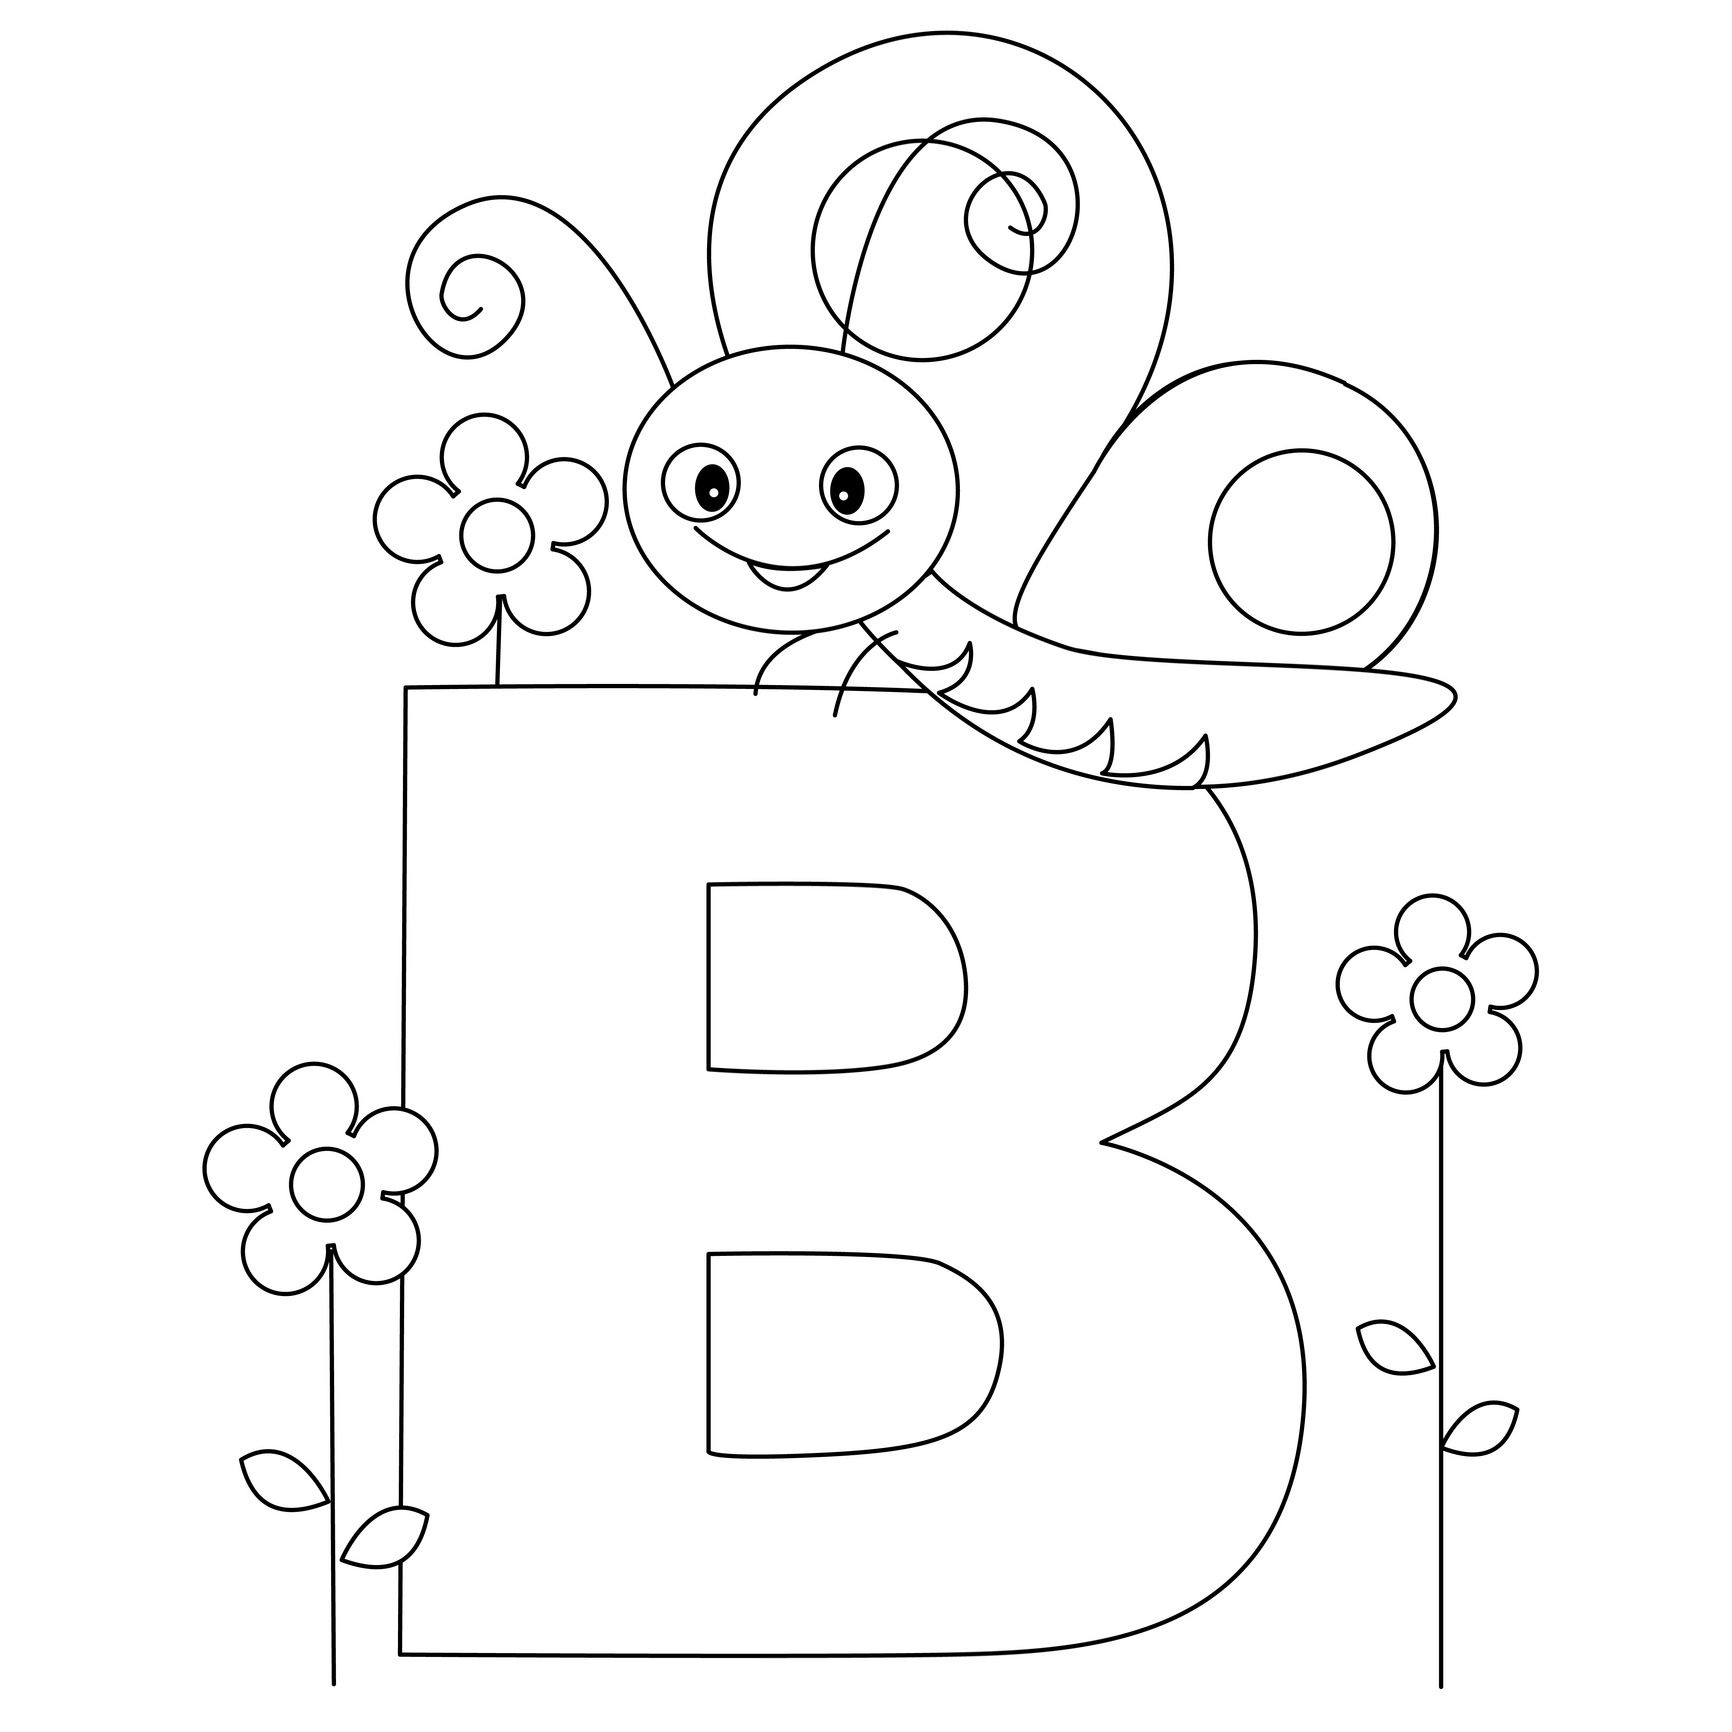 Pinj3N _ On Homeschool | Letter Work | Abc Coloring Pages - Free Printable Preschool Alphabet Coloring Pages